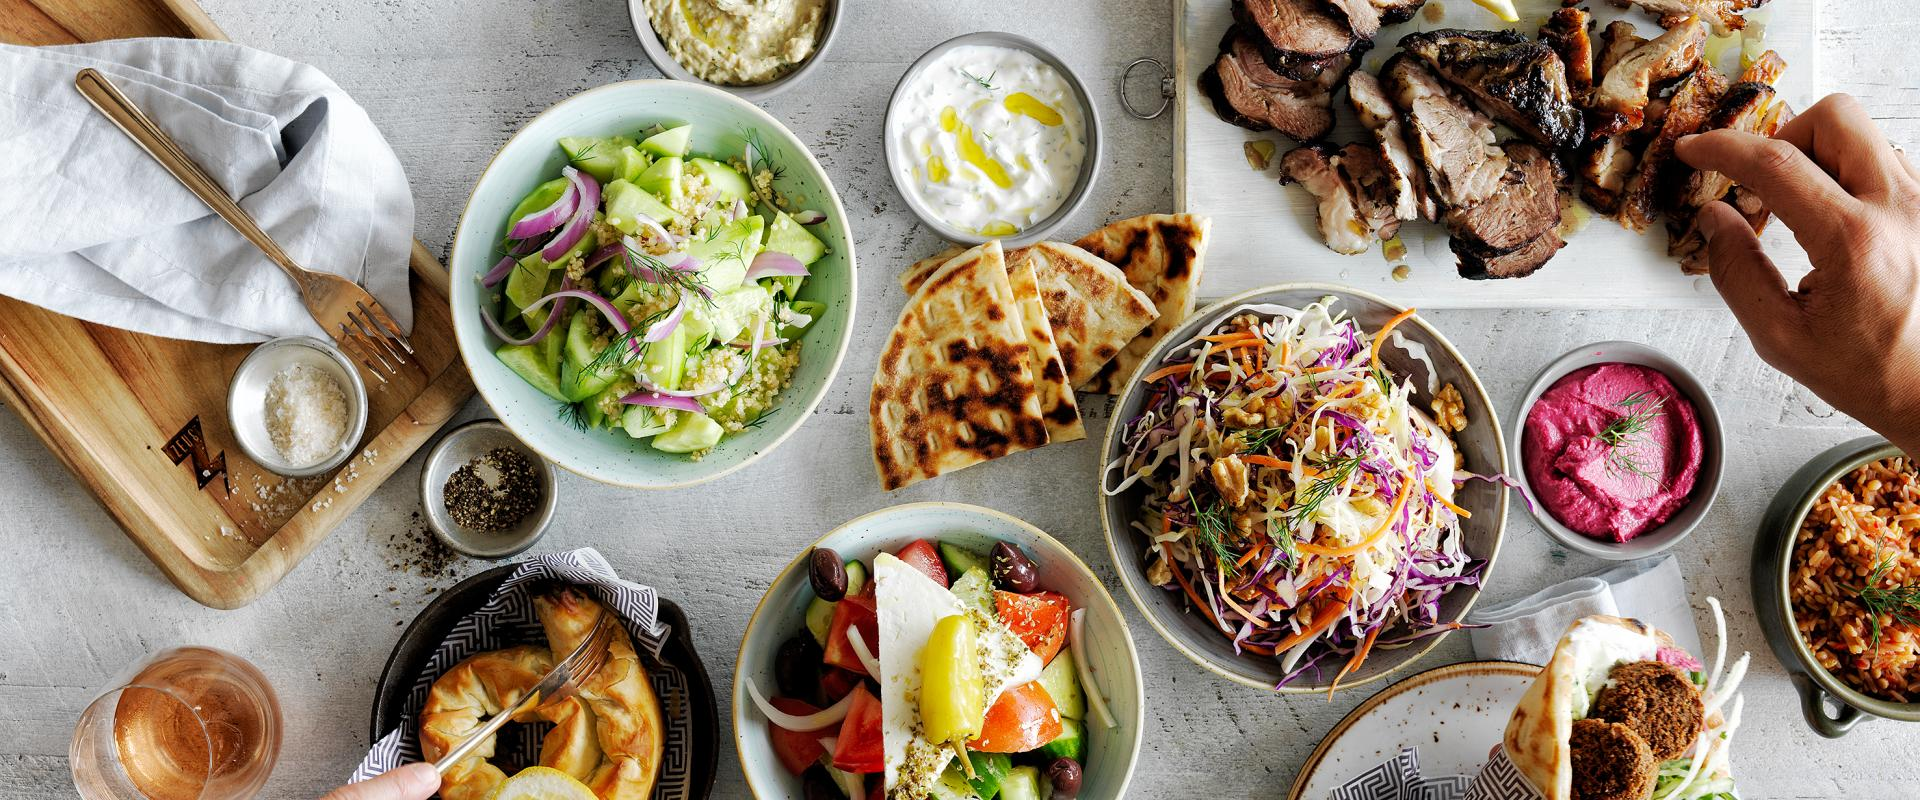 Zeus Street Greek Franchise Restaurant For Sale in NSW contact Matthew Page